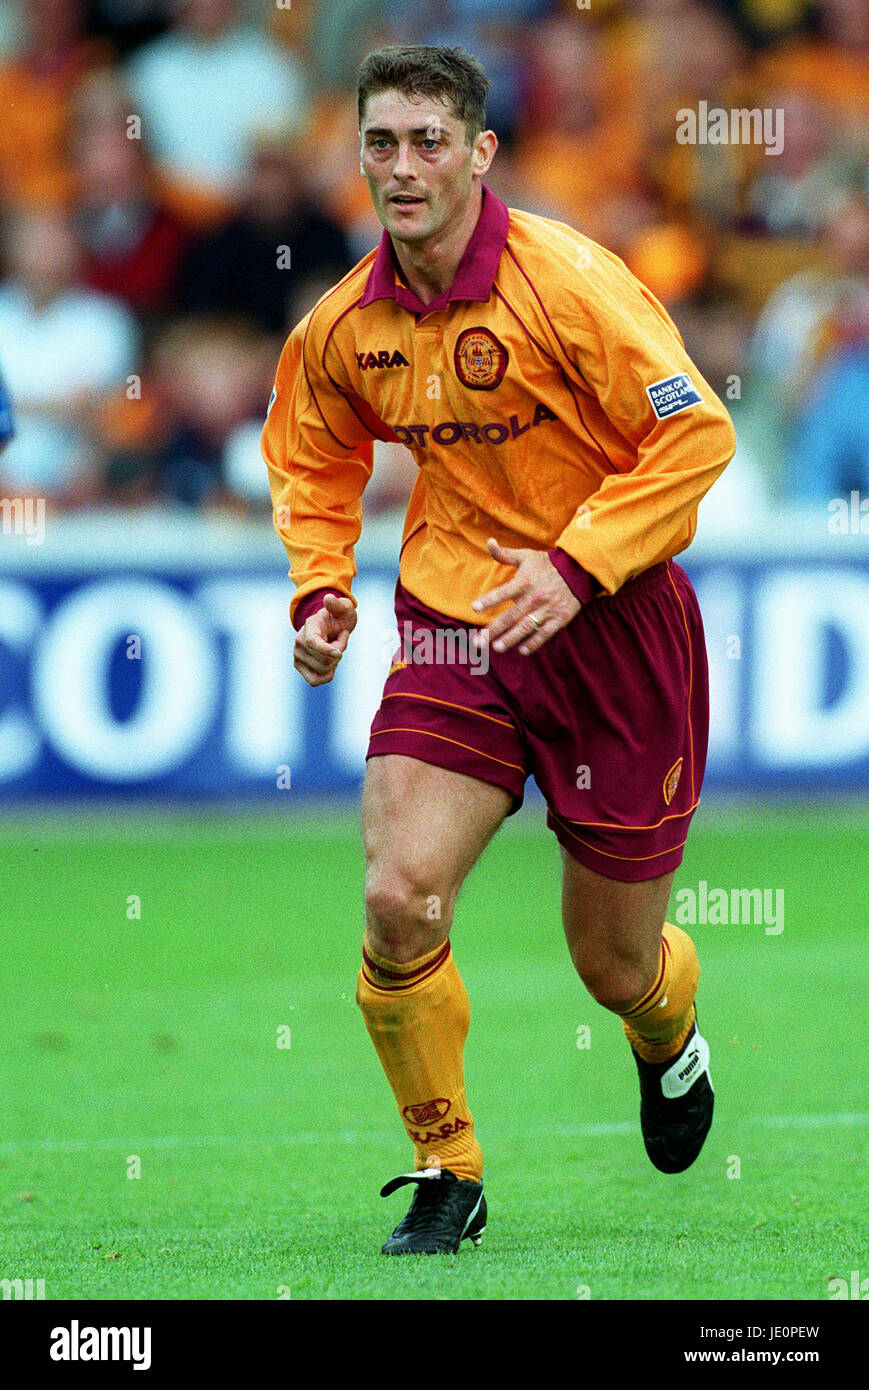 SCOTT LEITCH MOTHERWELL FC MOTHERWELL FIR PARK 23 September 2000 - Stock Image